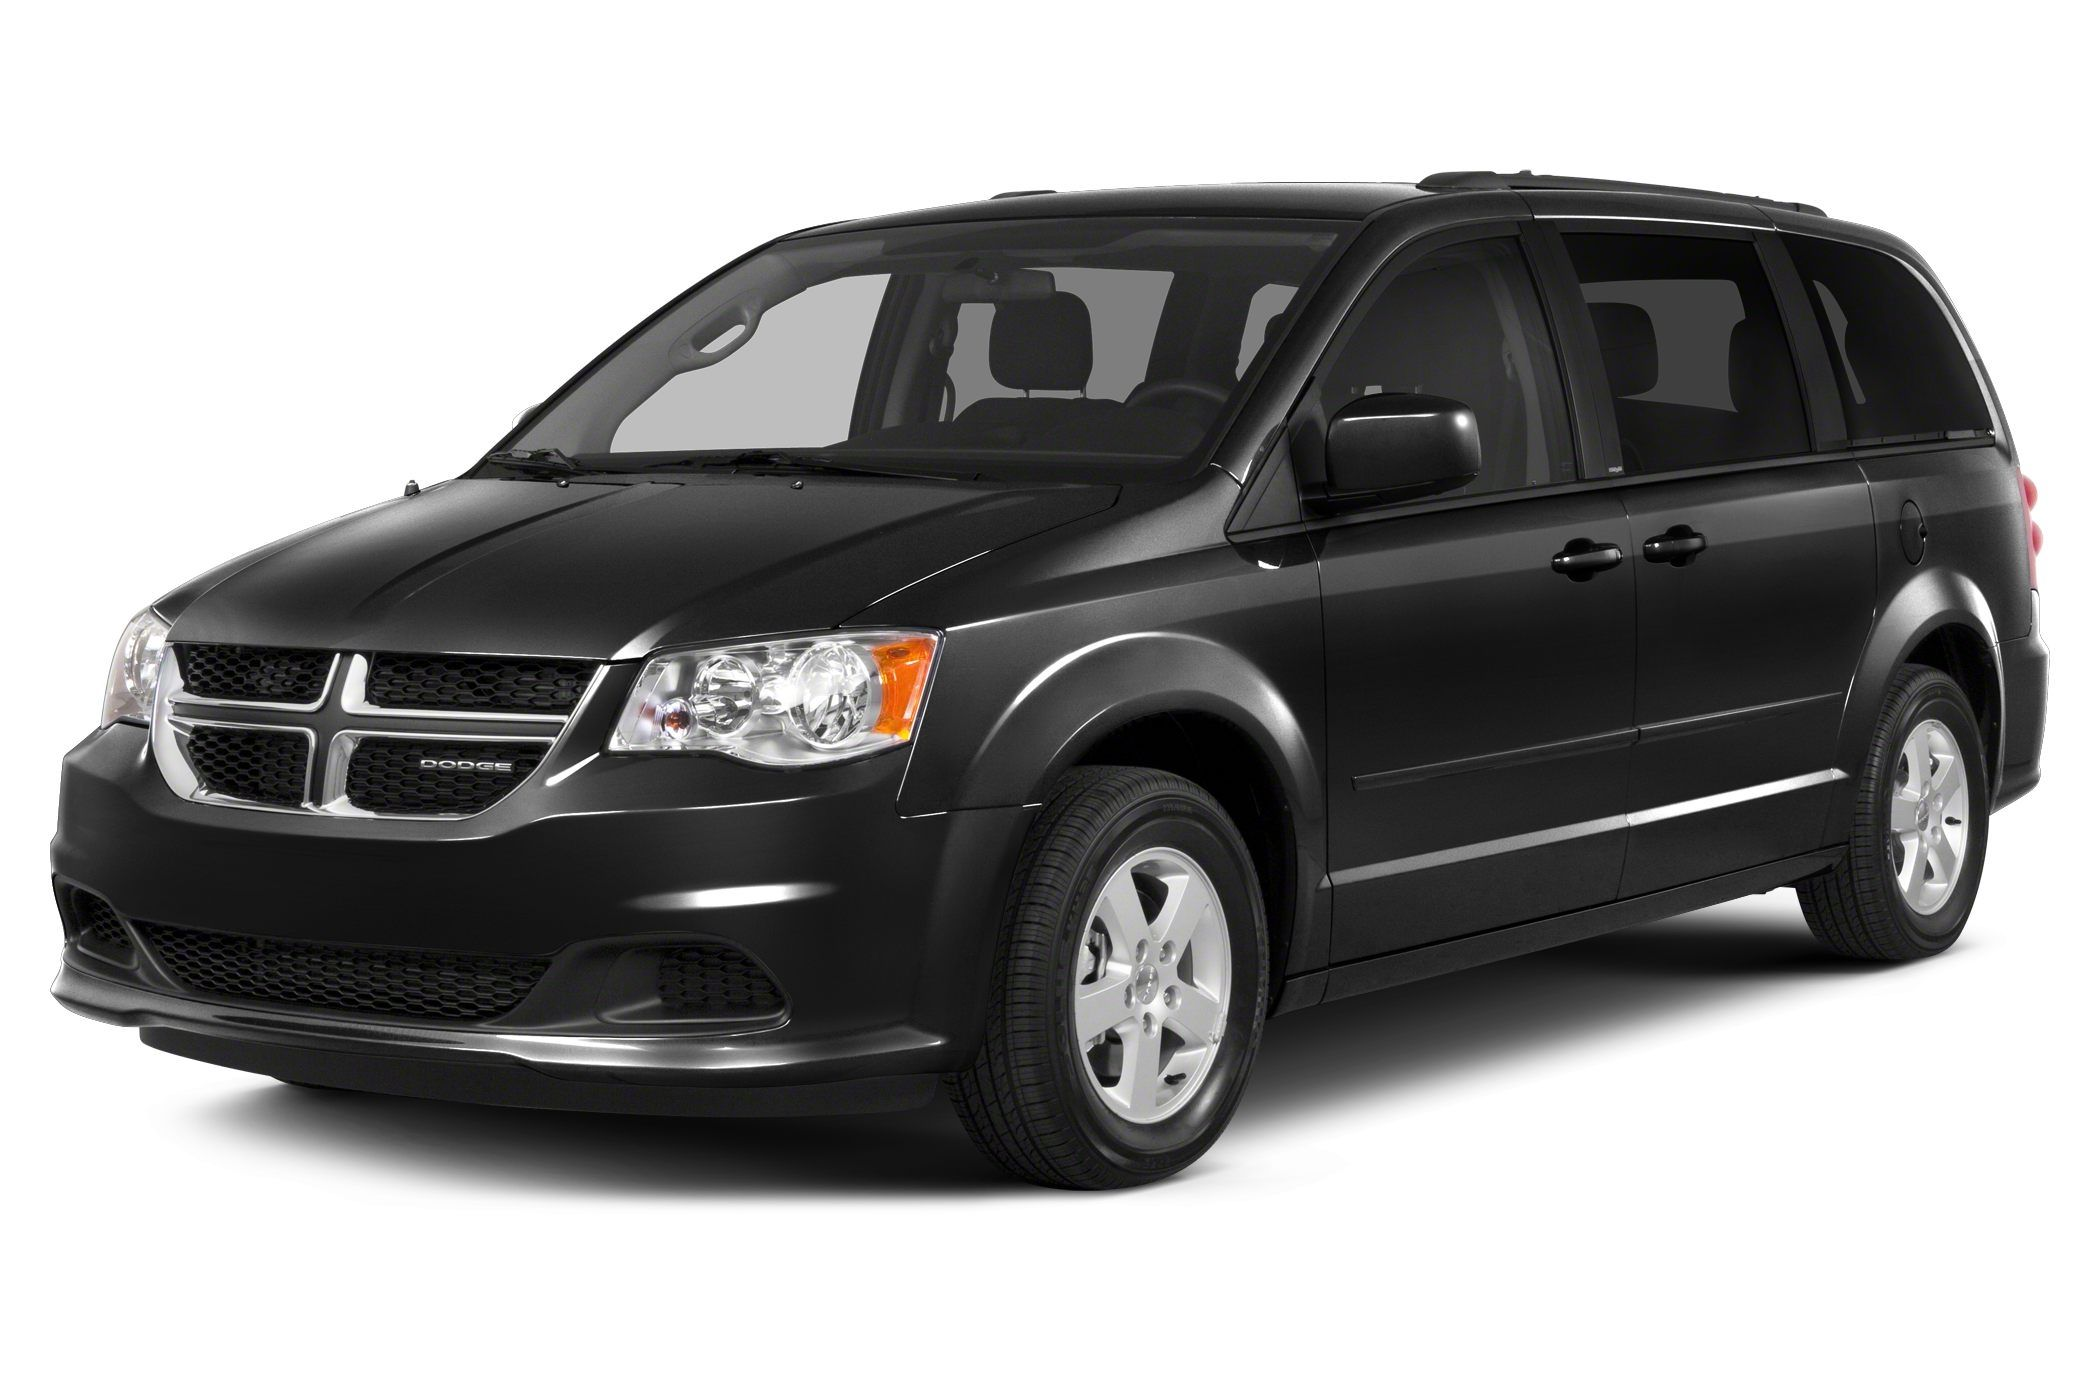 Amusing Dodge Grand Caravan Photos Gallery Dodge 2015 Dodge